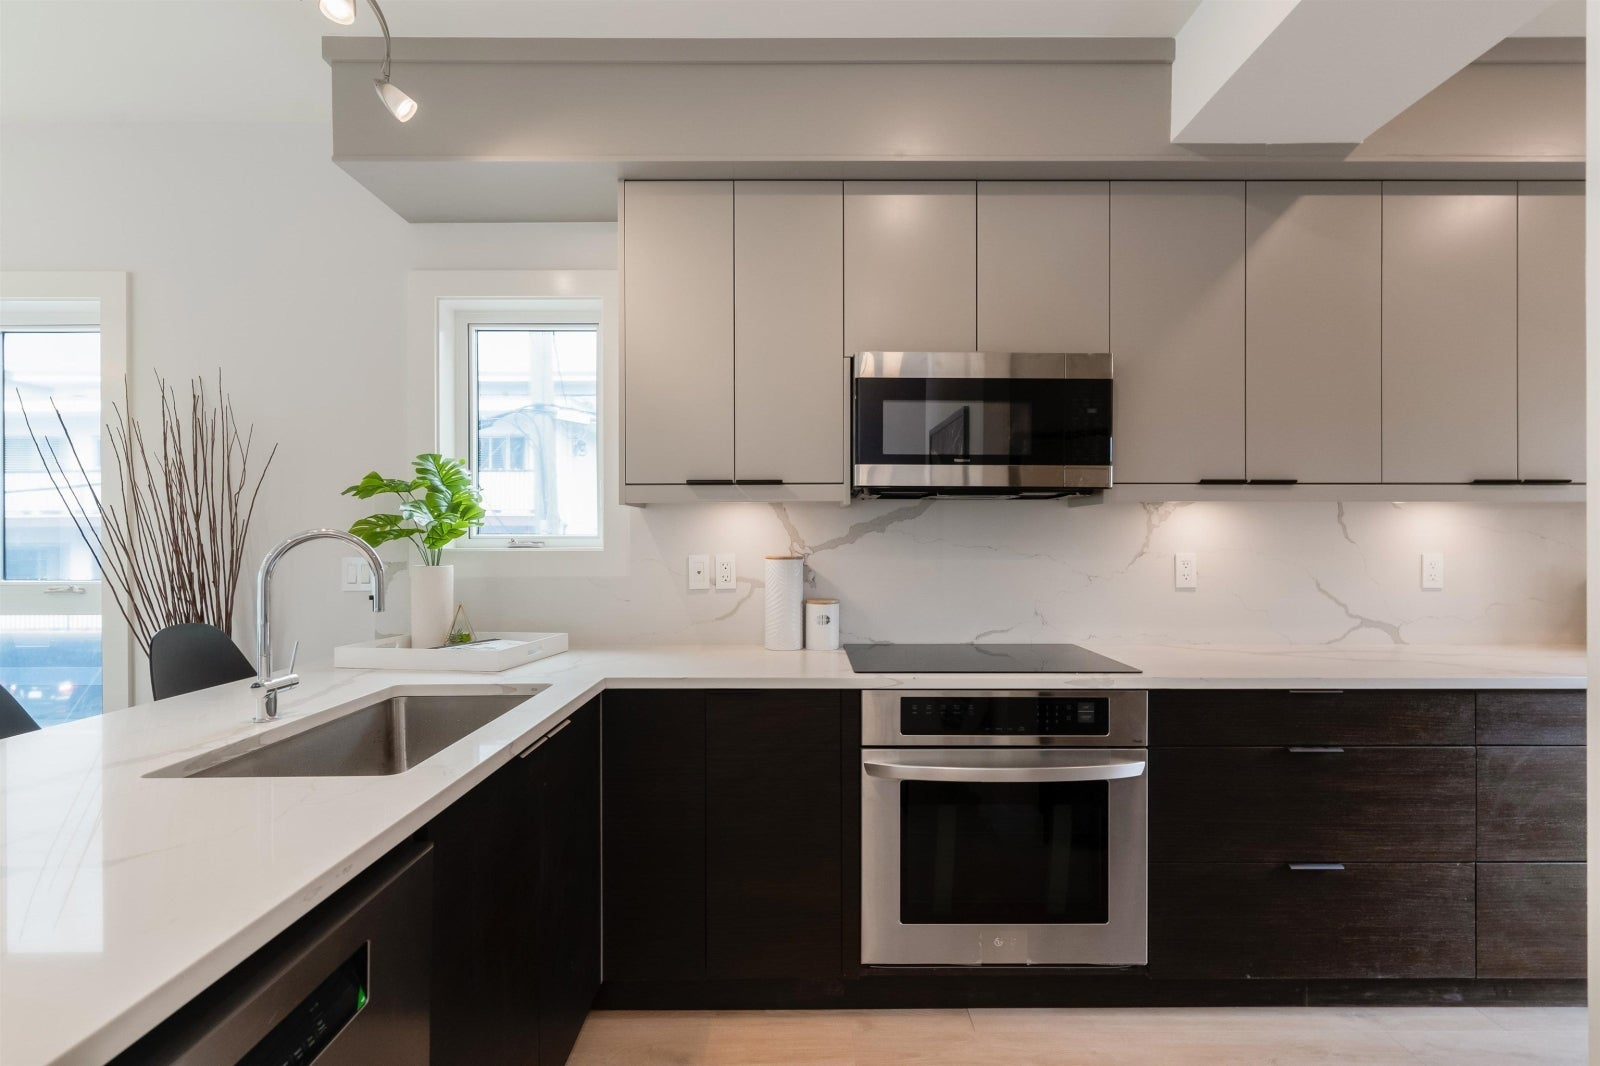 TH 1 230-232 E 8TH STREET - Central Lonsdale Townhouse for sale, 3 Bedrooms (R2610807) #8